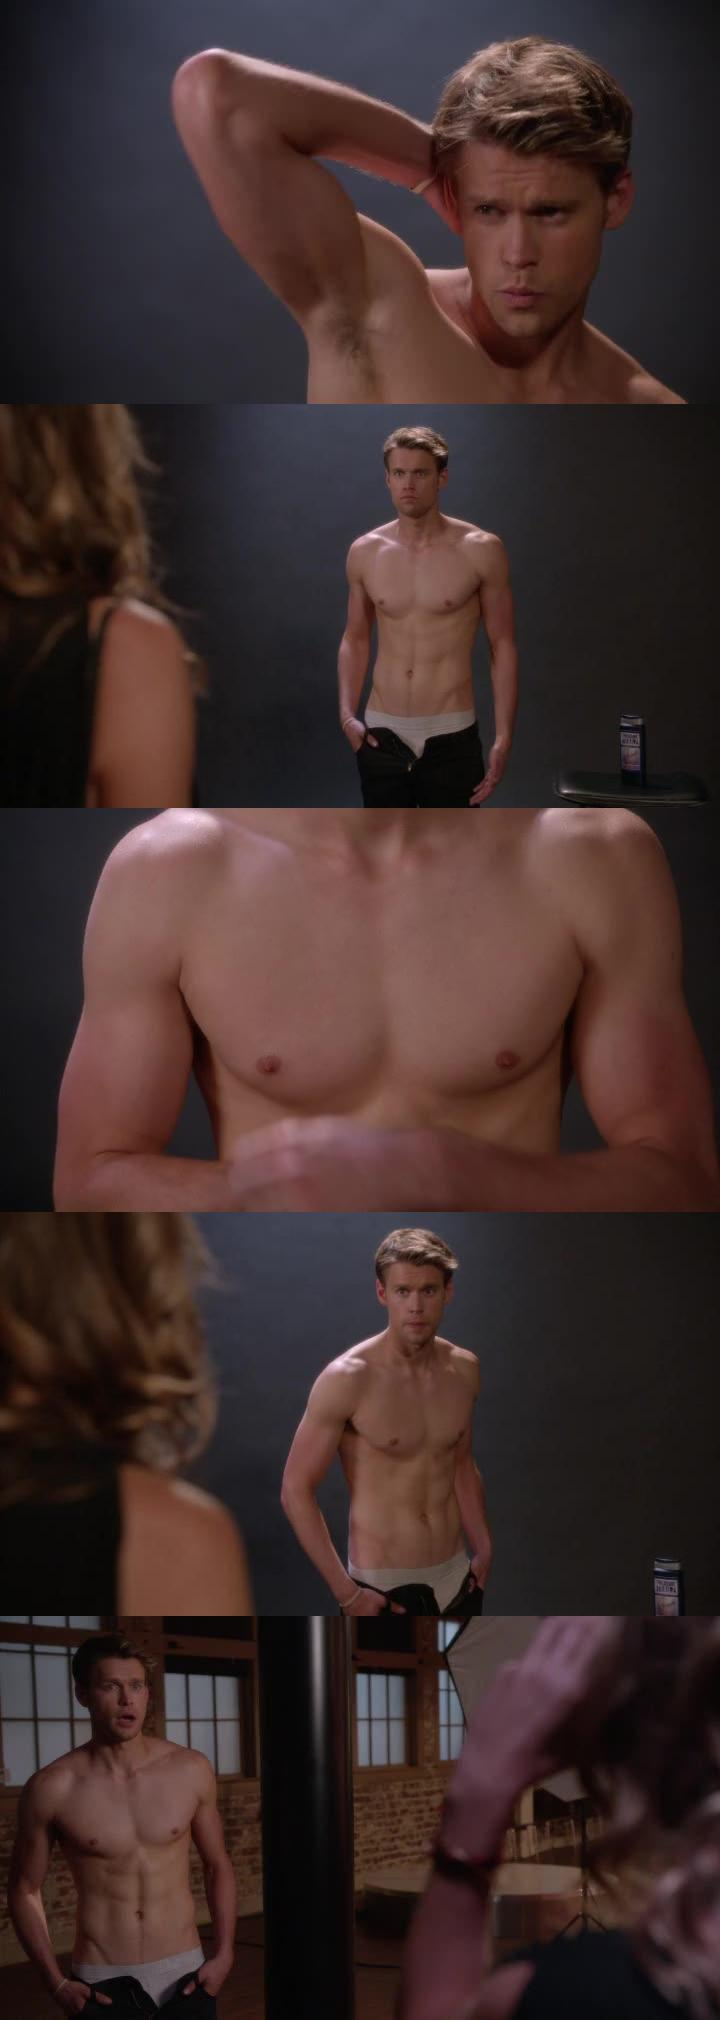 Best part of the episod wad definitly this. And ... now we have to wait until 2015 for season 6 ... :(